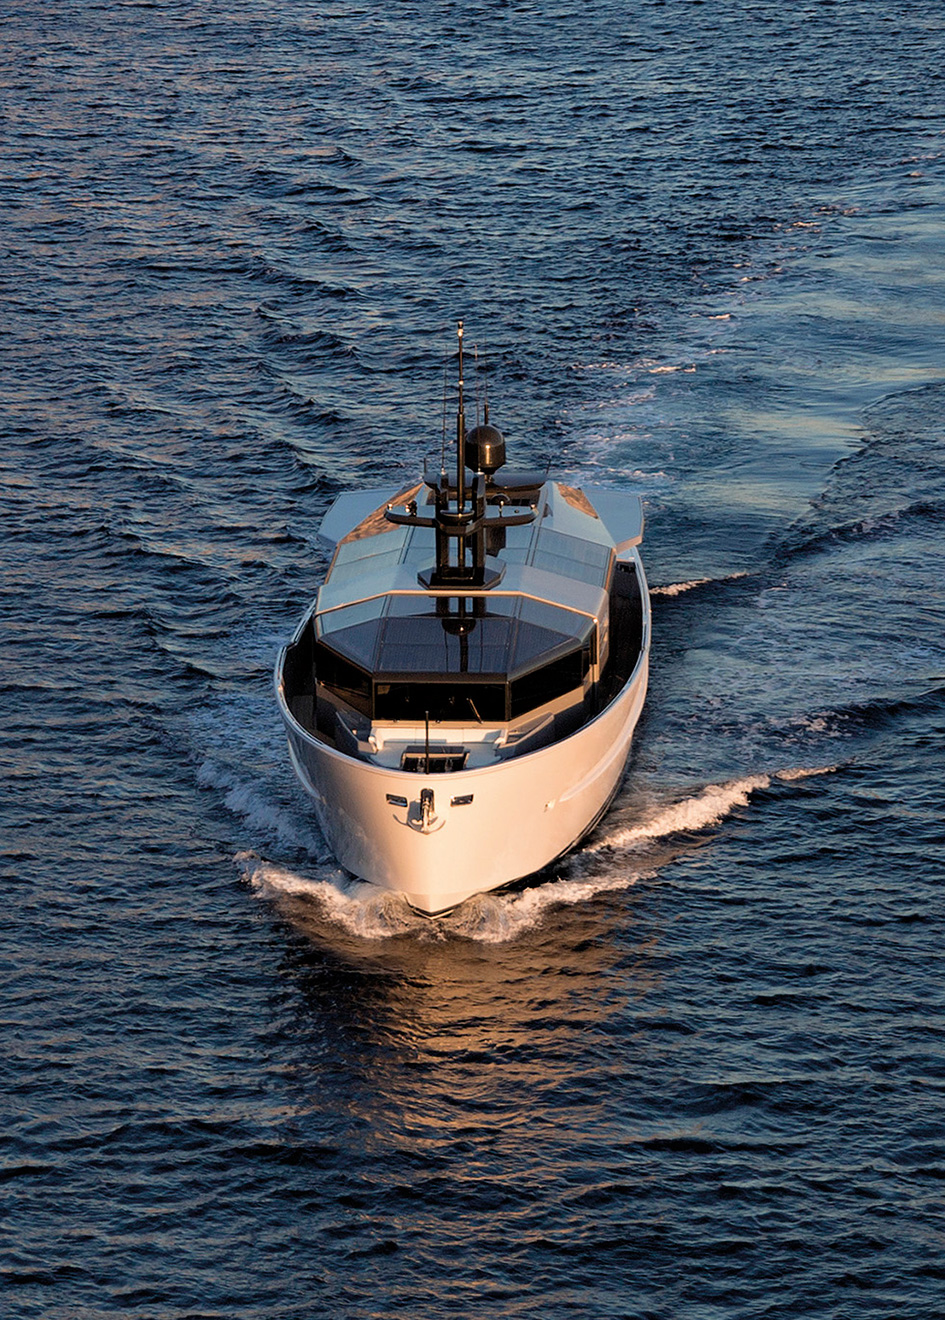 bow-view-of-the-arcadia-85-yacht